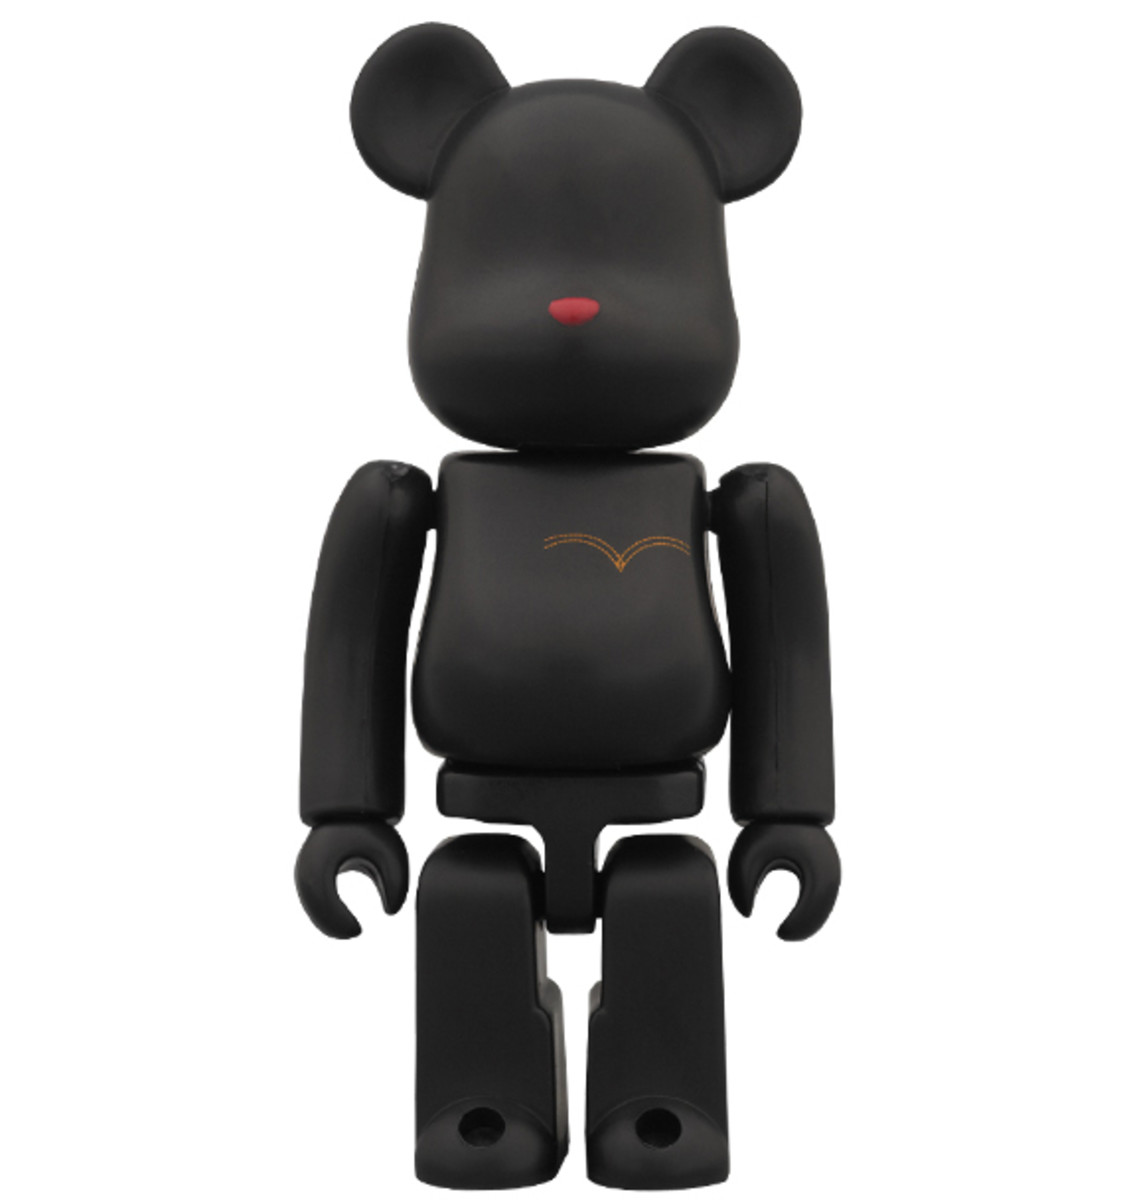 levis-medicom-toy-black-denim-bearbrick-06